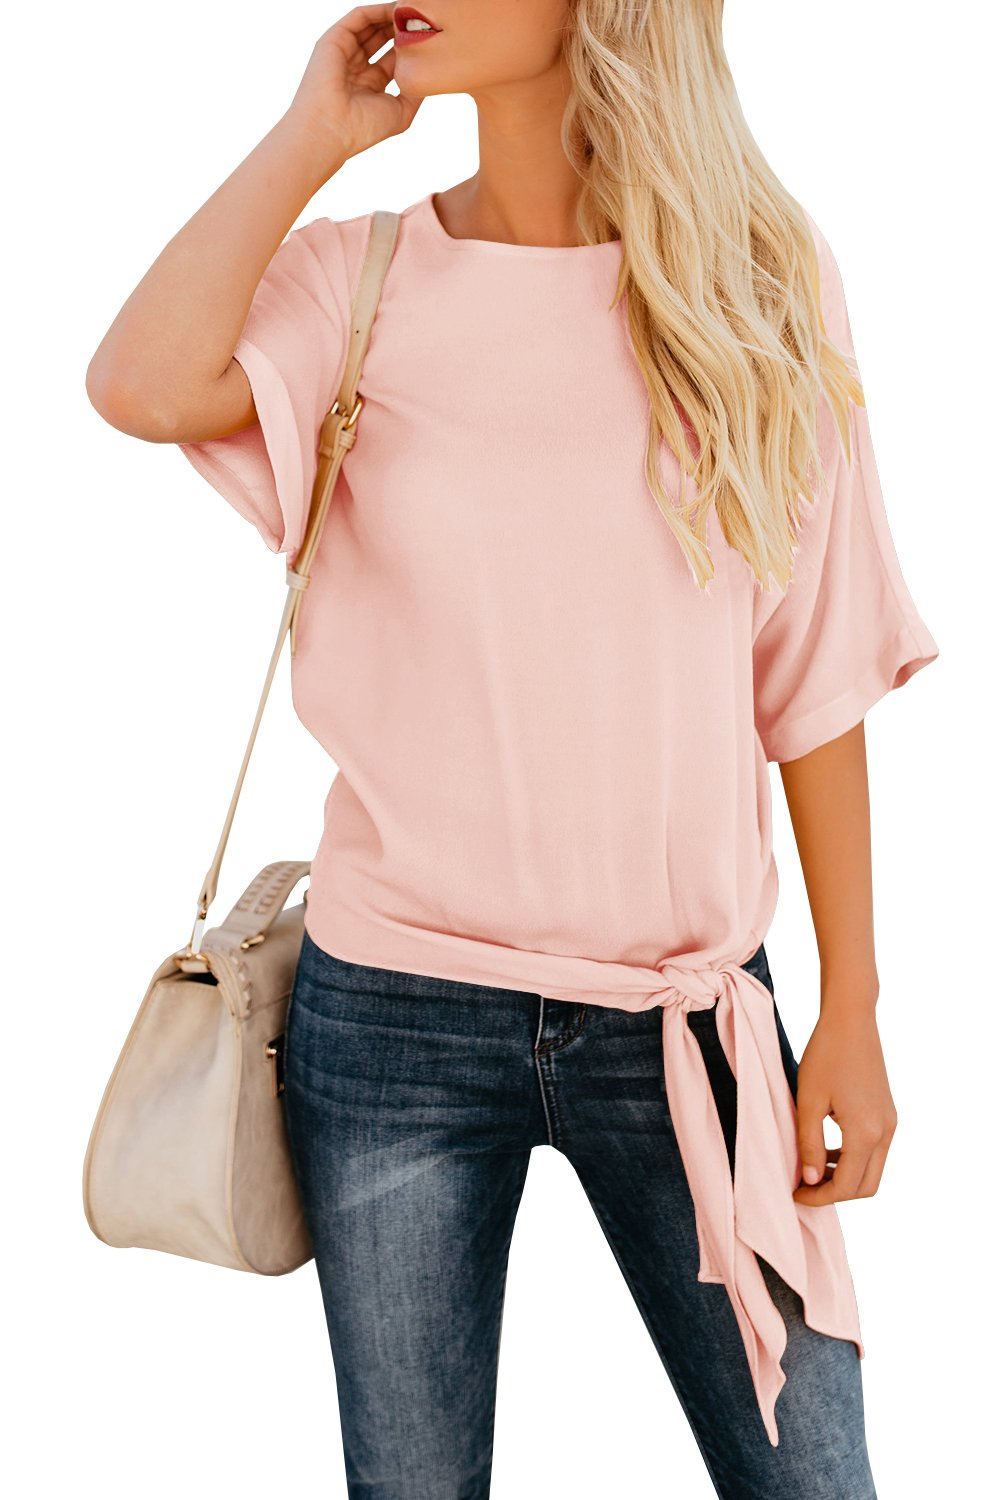 Niitawm Womens Blouse Casual Knot Tie Front Loose Fit Half Sleeve Tee Top T-Shirt Blouses (M, Pink)